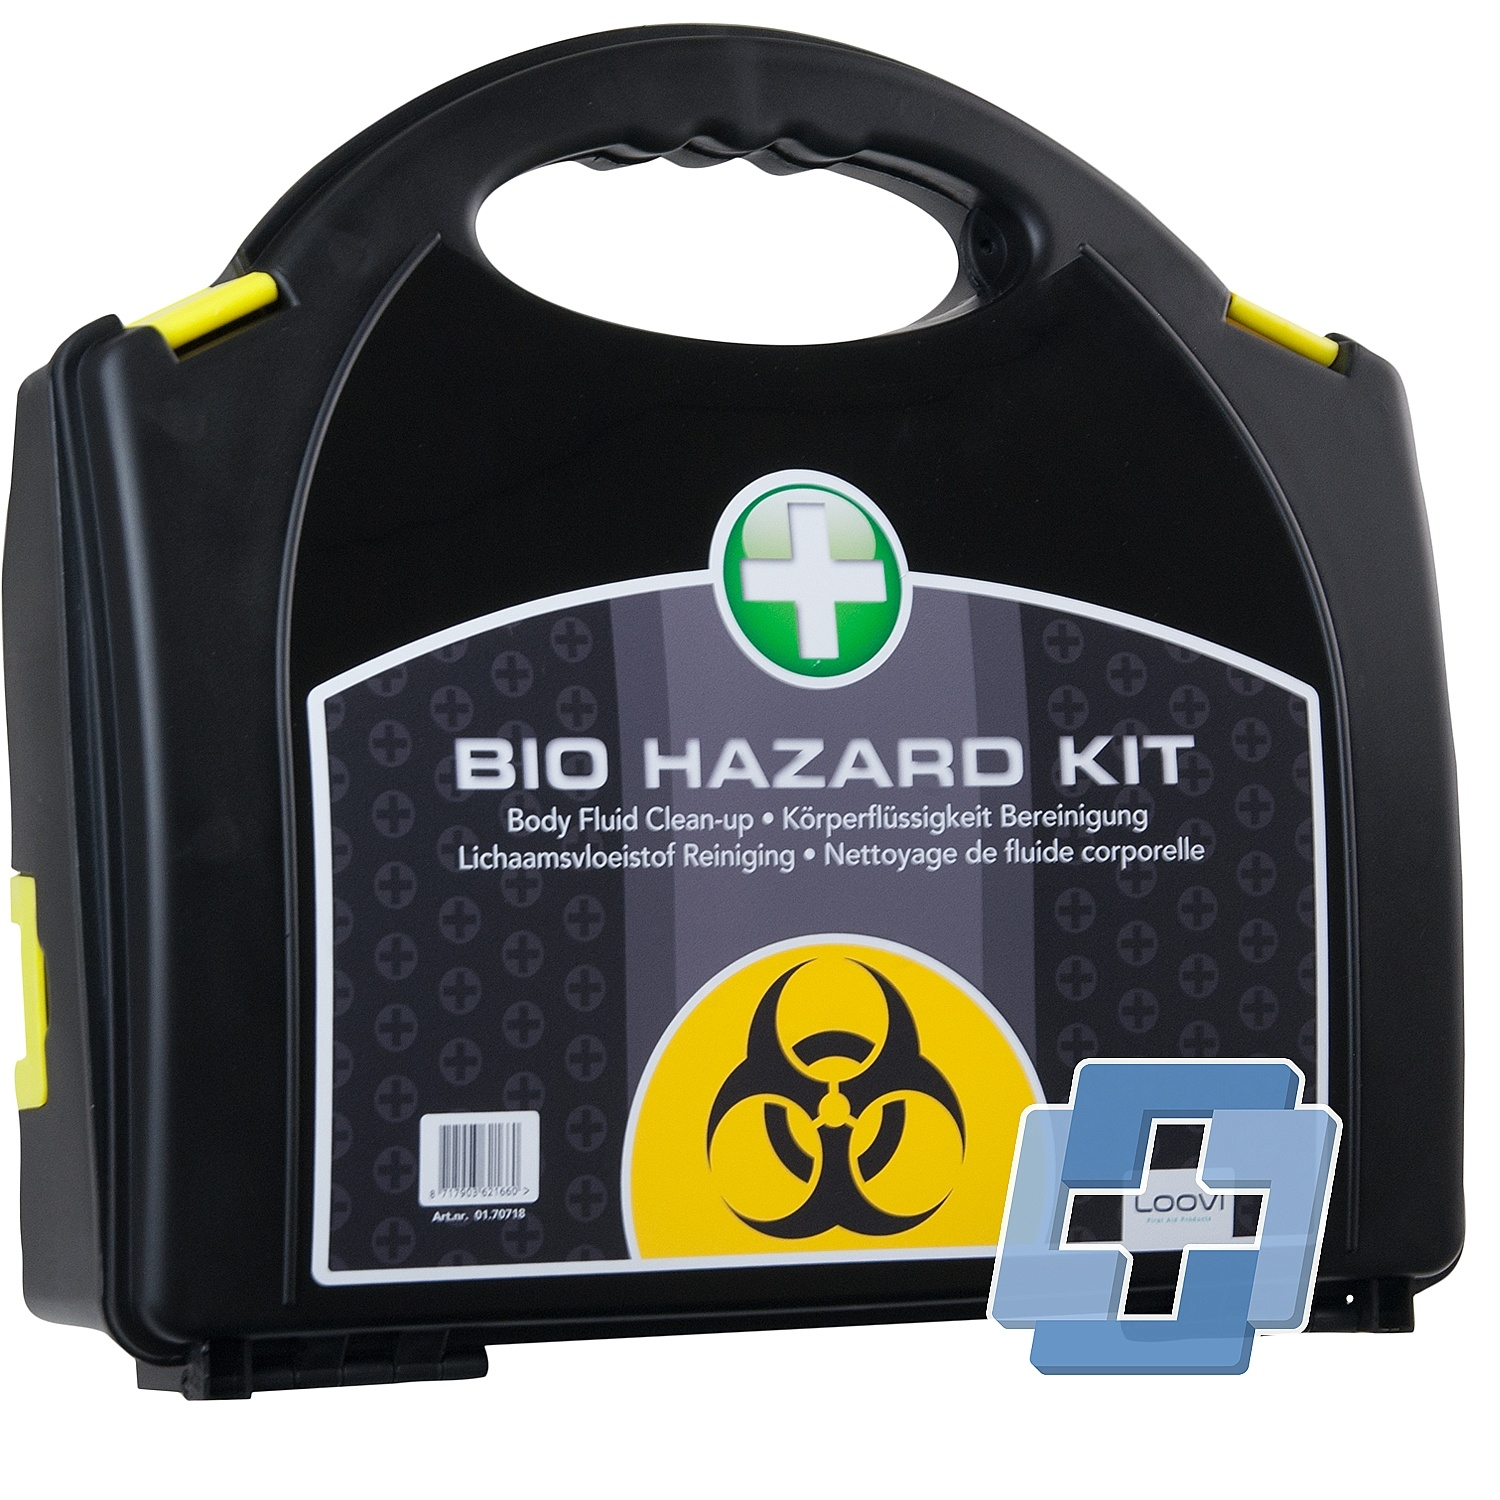 Reliance Body fluid clean up kit